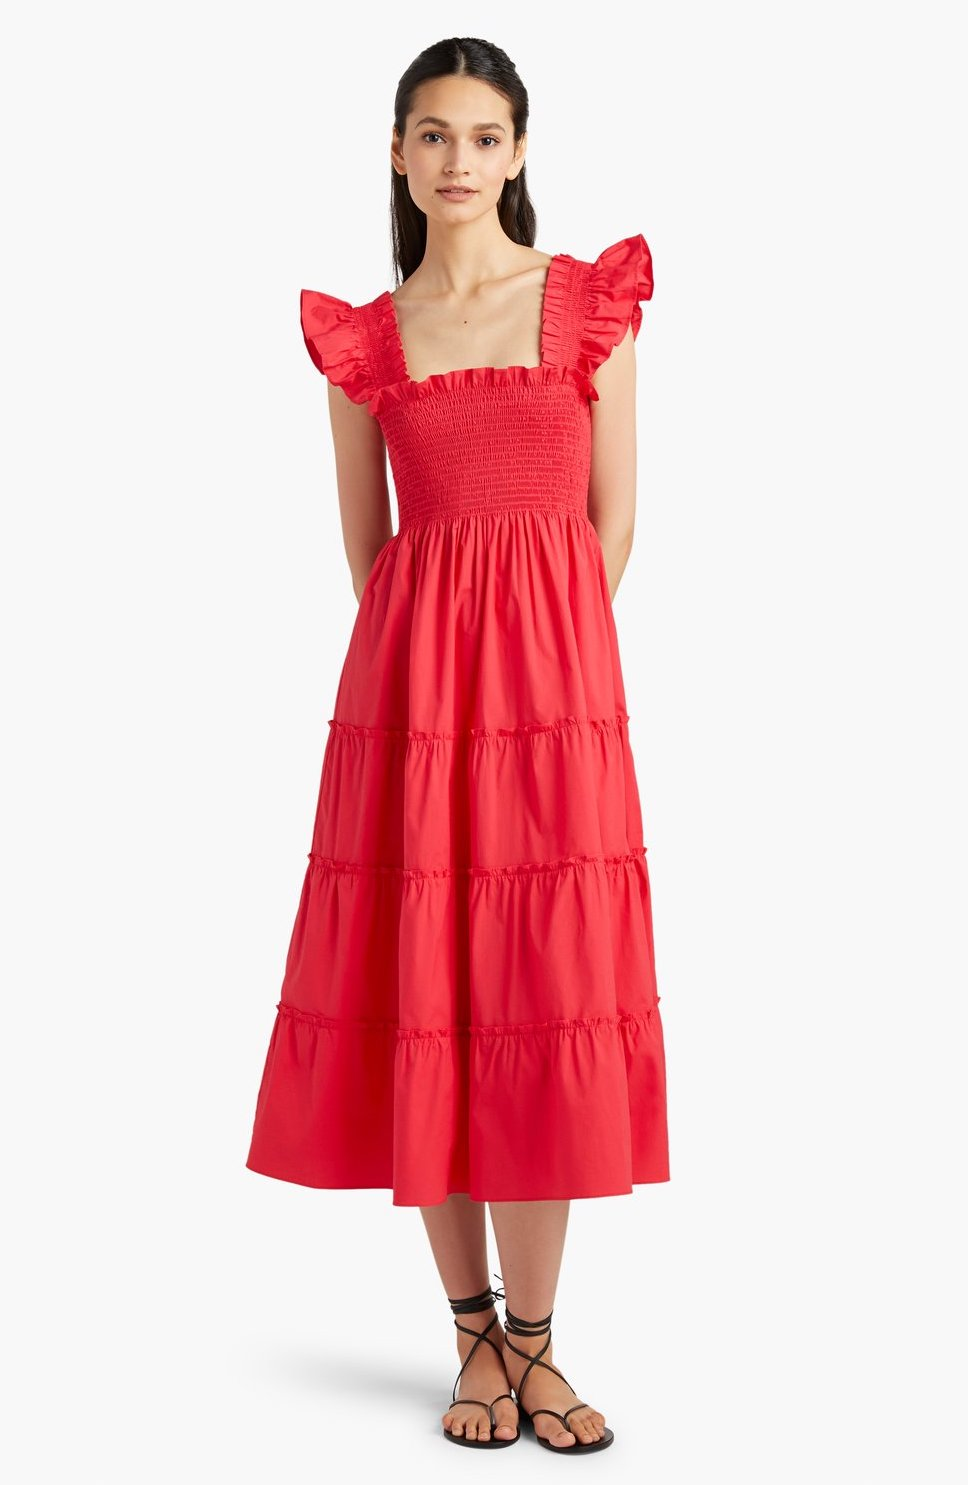 Red nap dress from Hill House Home